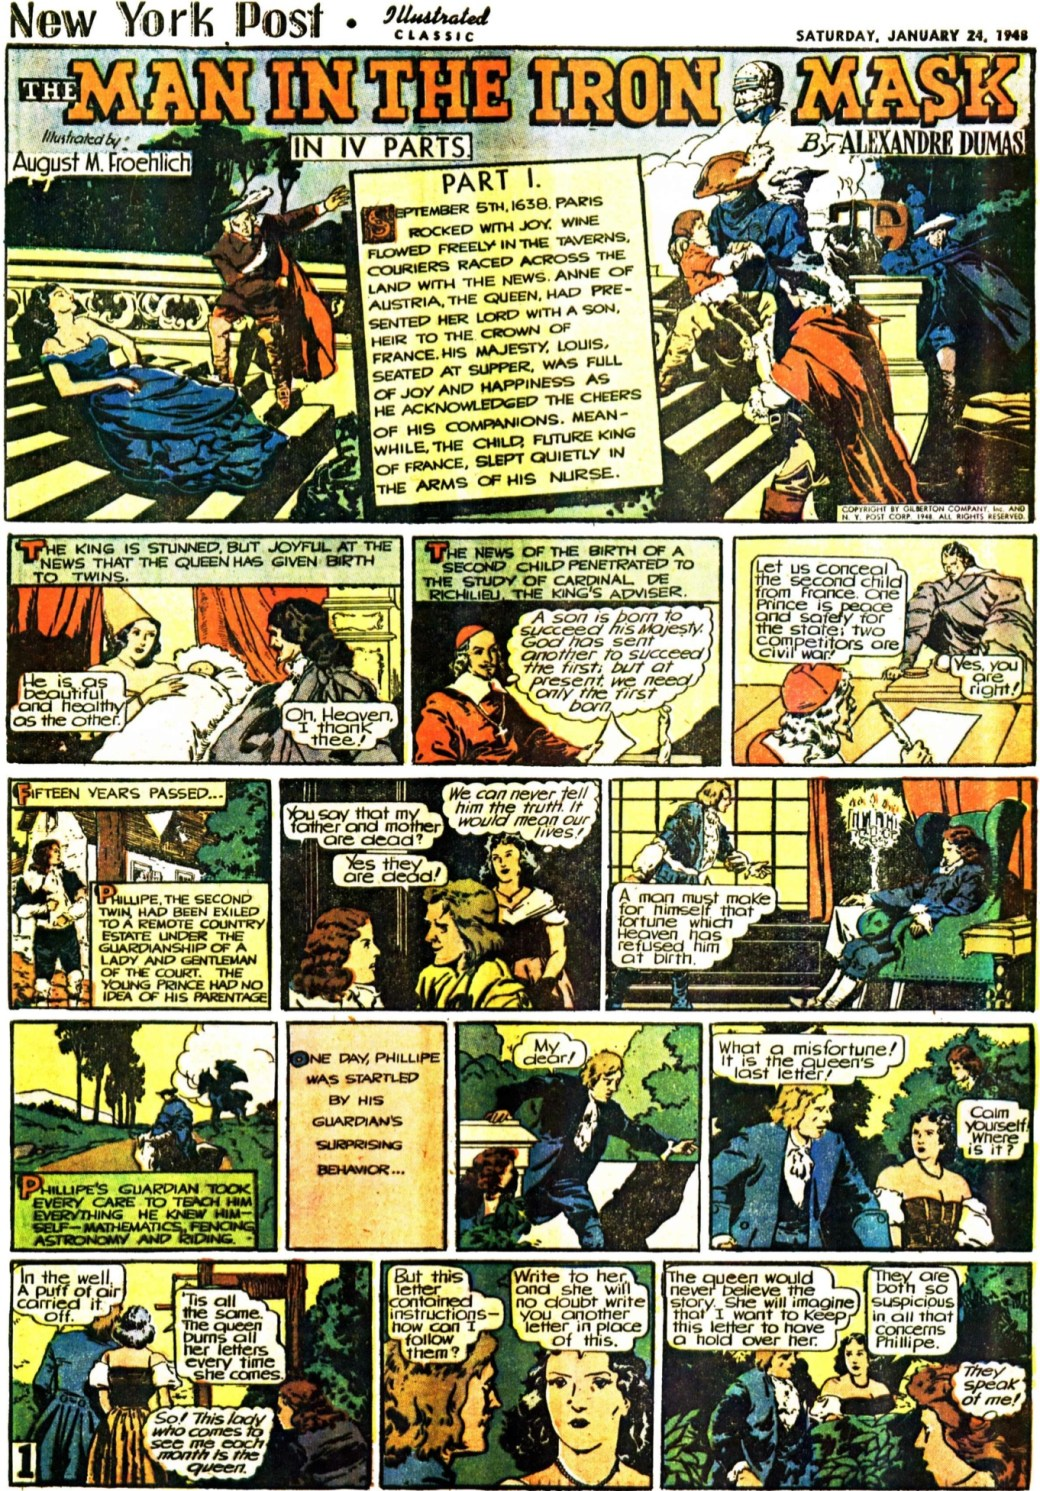 Inledande strippsida ur The Man in the Iron Mask, från 24 januari 1948. En slags Illustrerade klassiker som söndagsbilaga. ©Gilberton